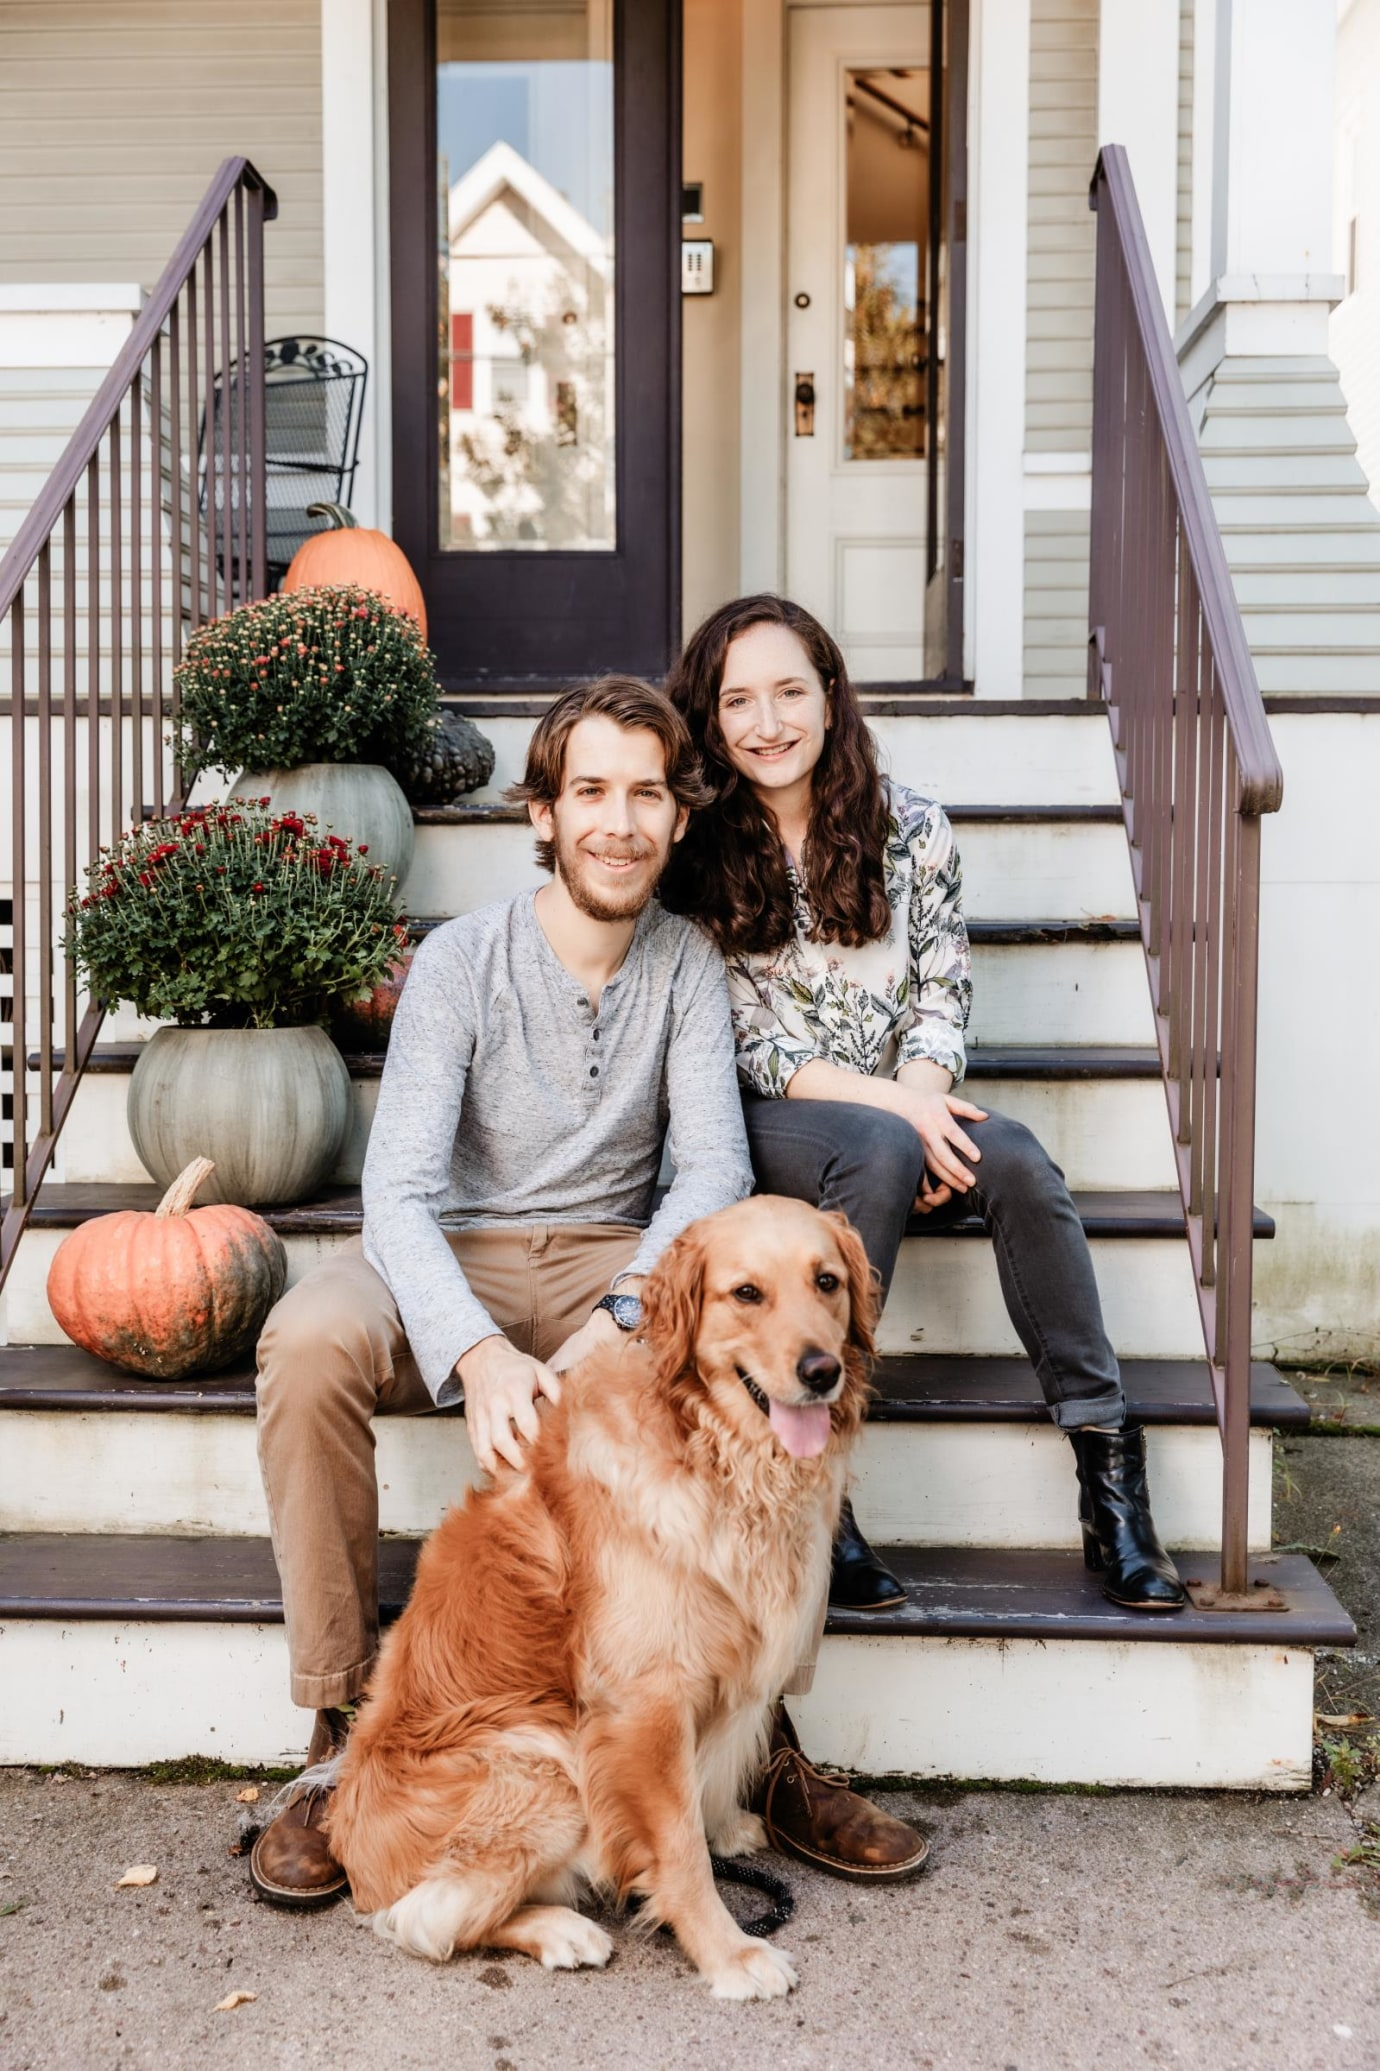 Daniel Barson and Abigail Green at their home in New Haven.